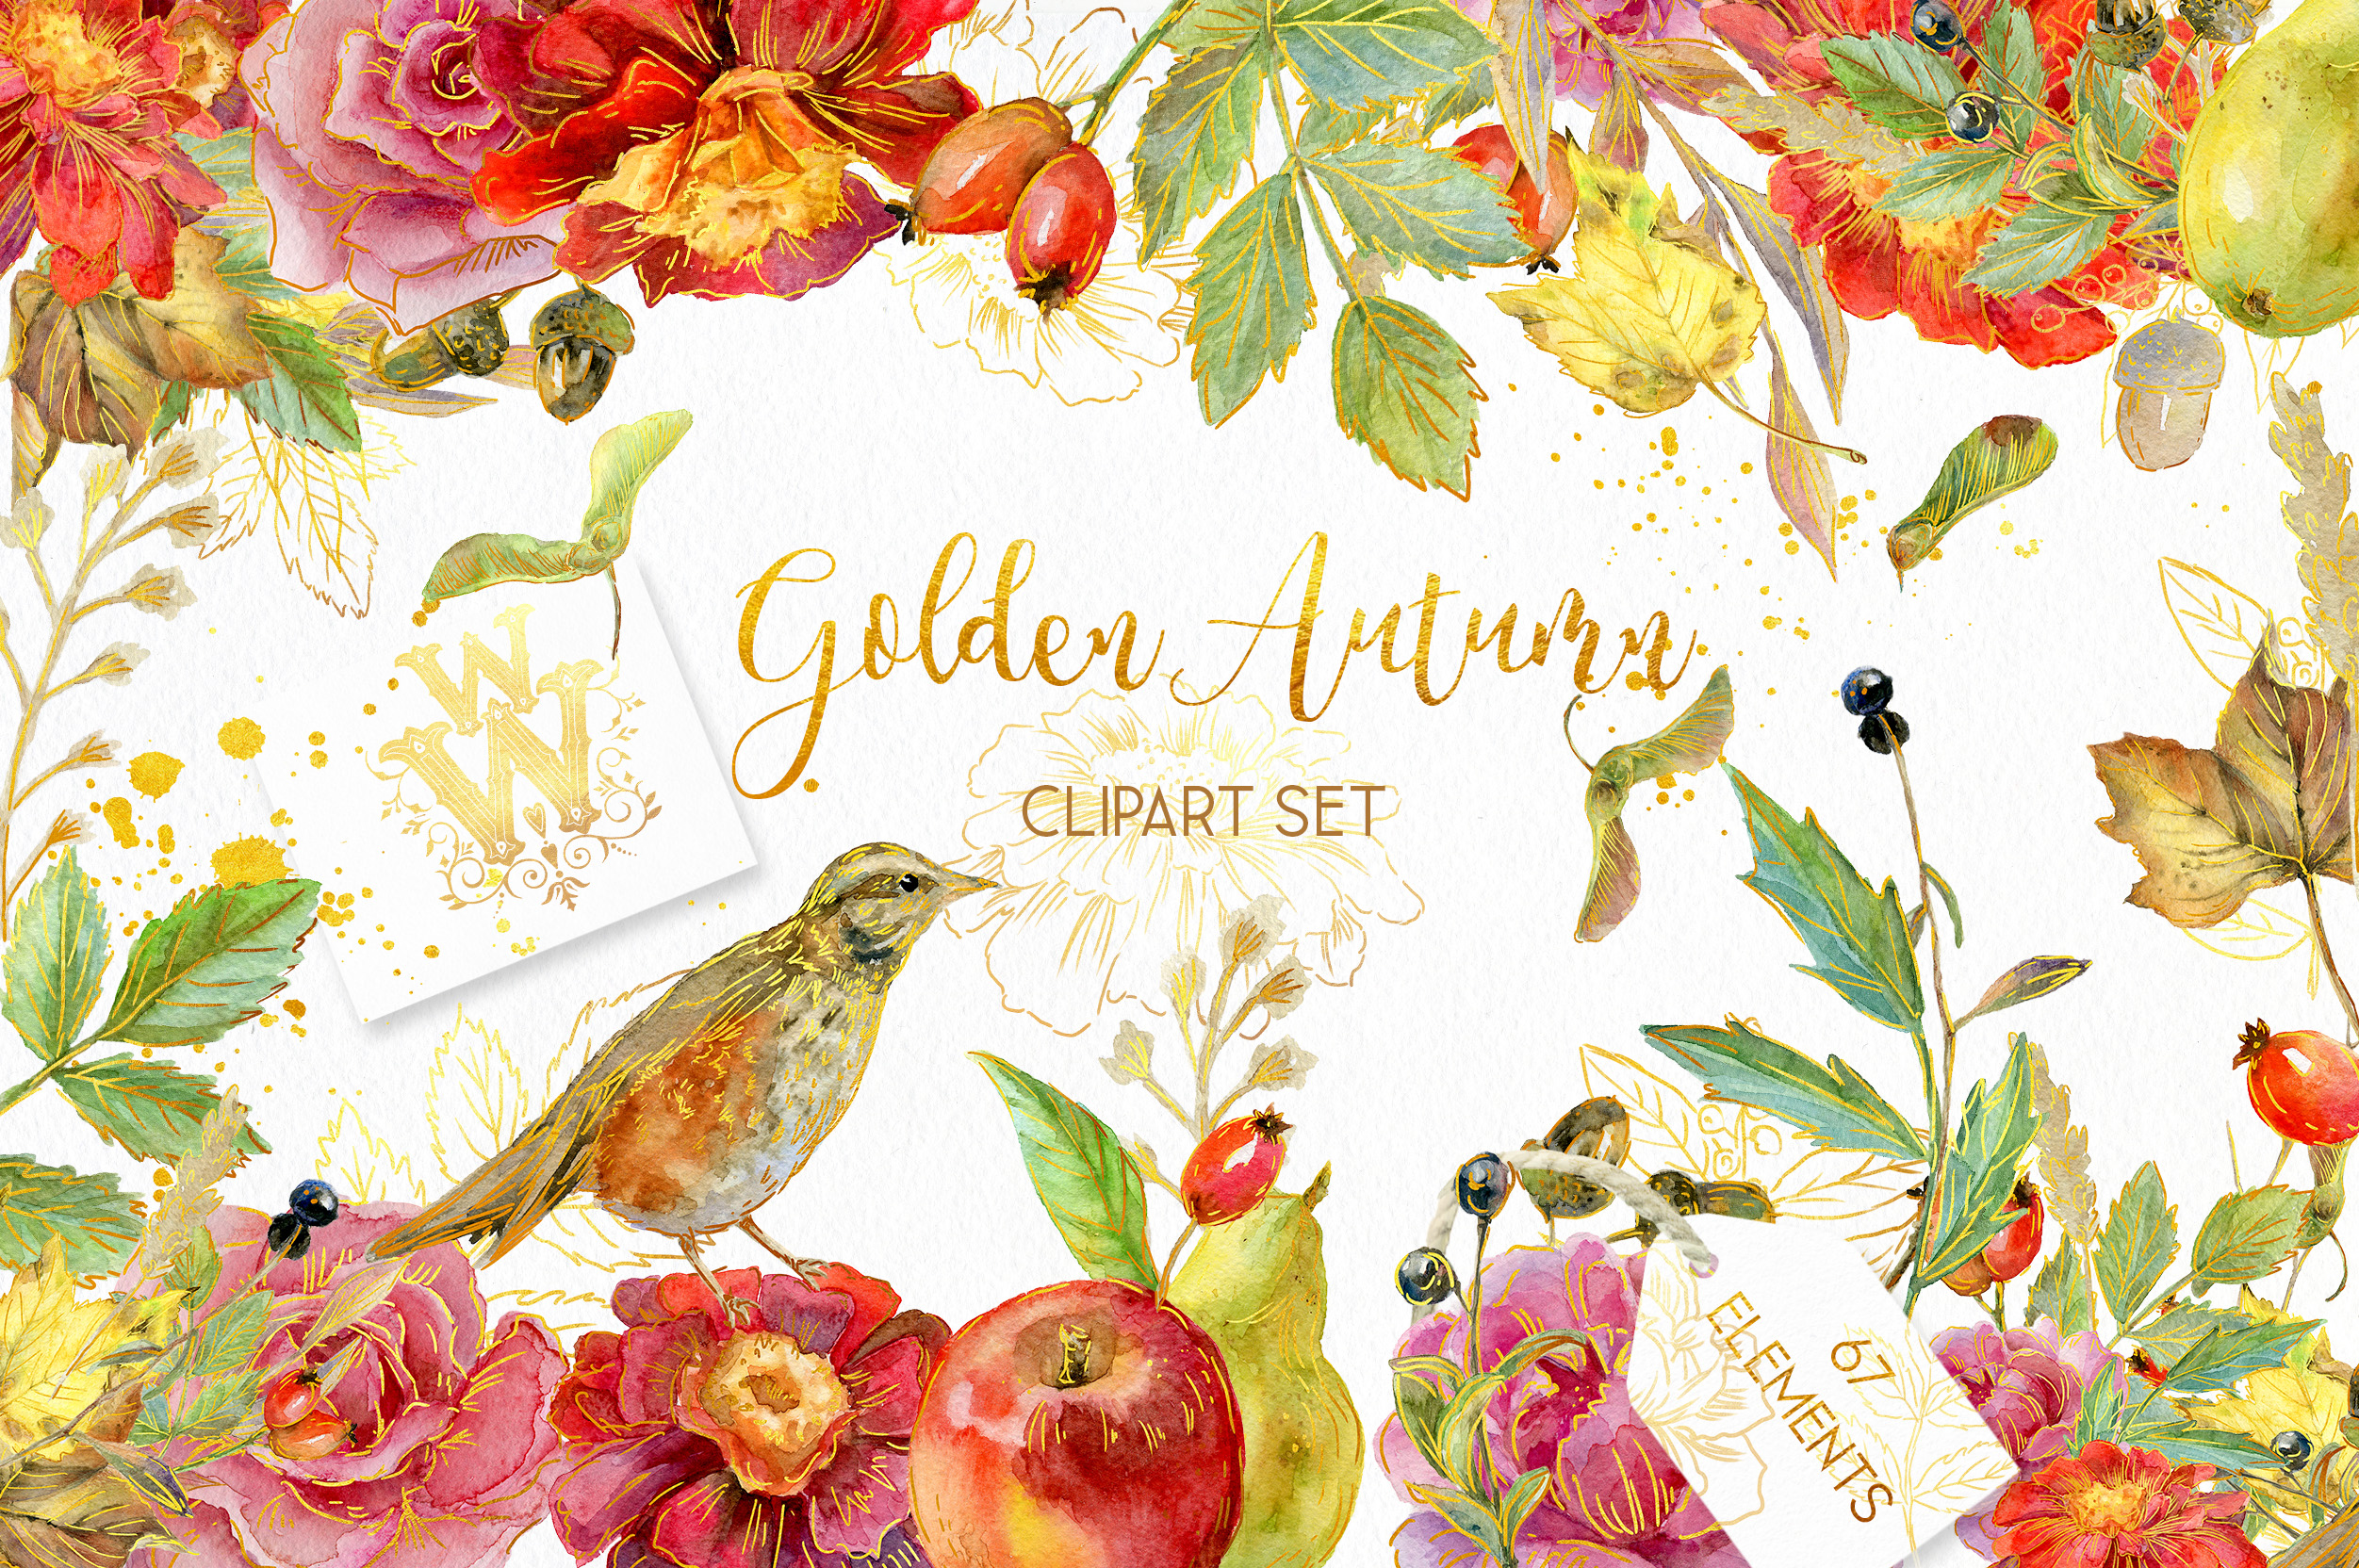 Golden Autumn clipart, Thanksgiving floral clip art example image 1